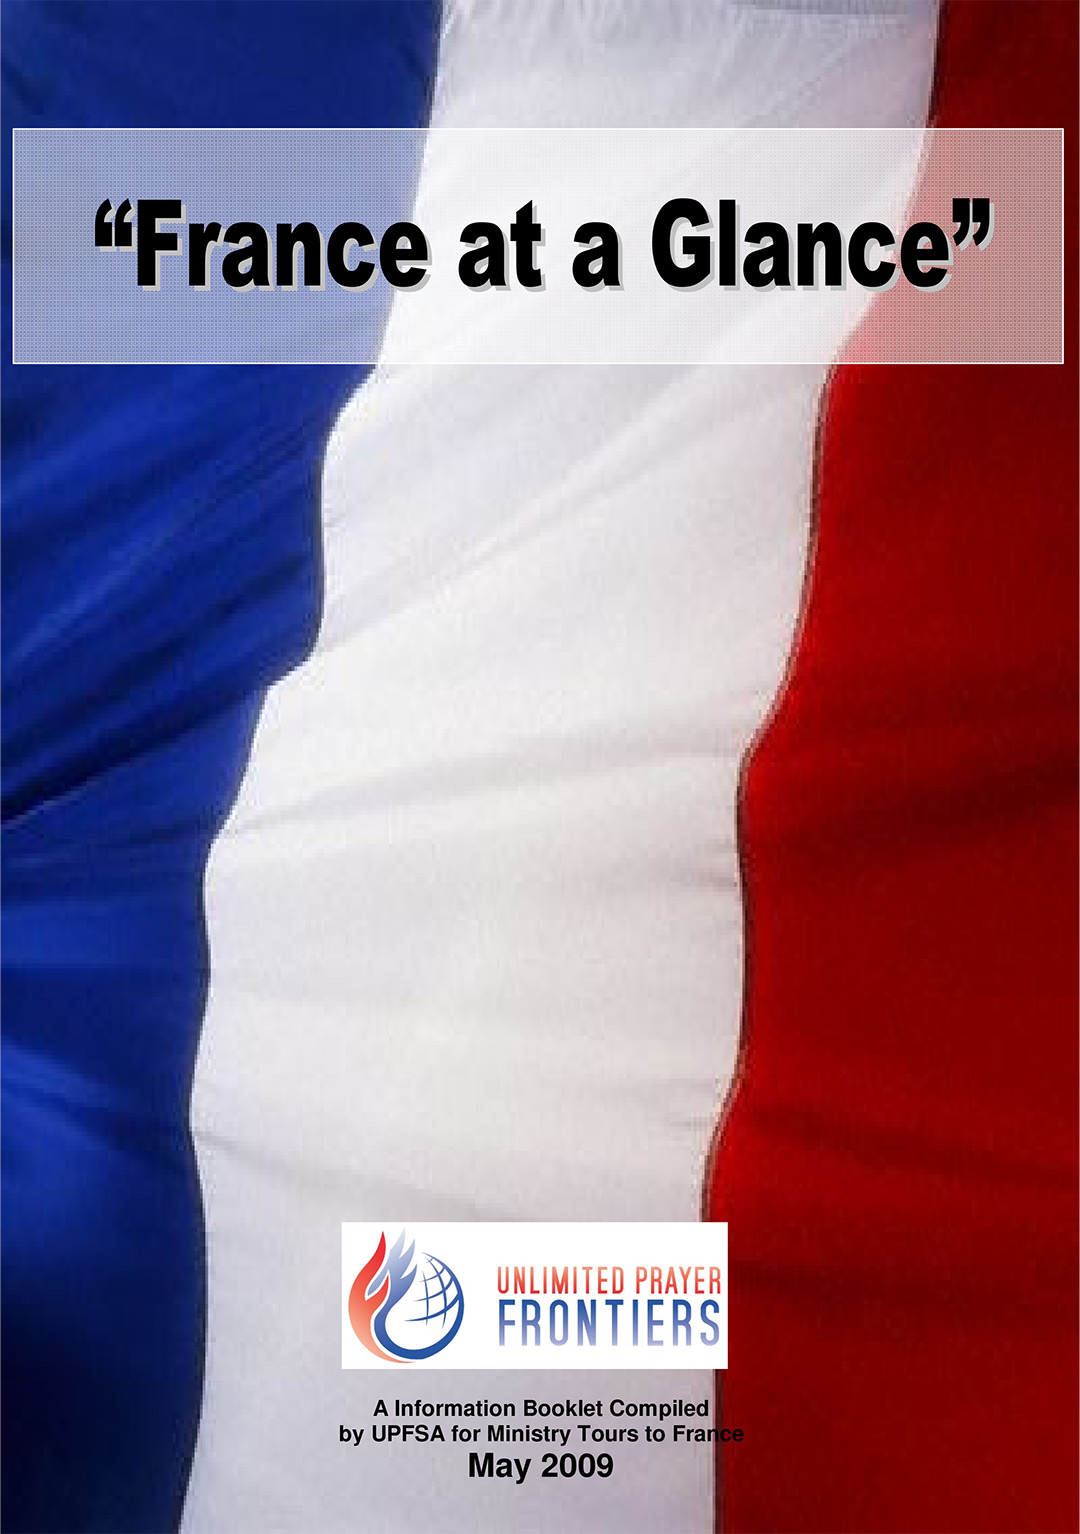 France at a Glance